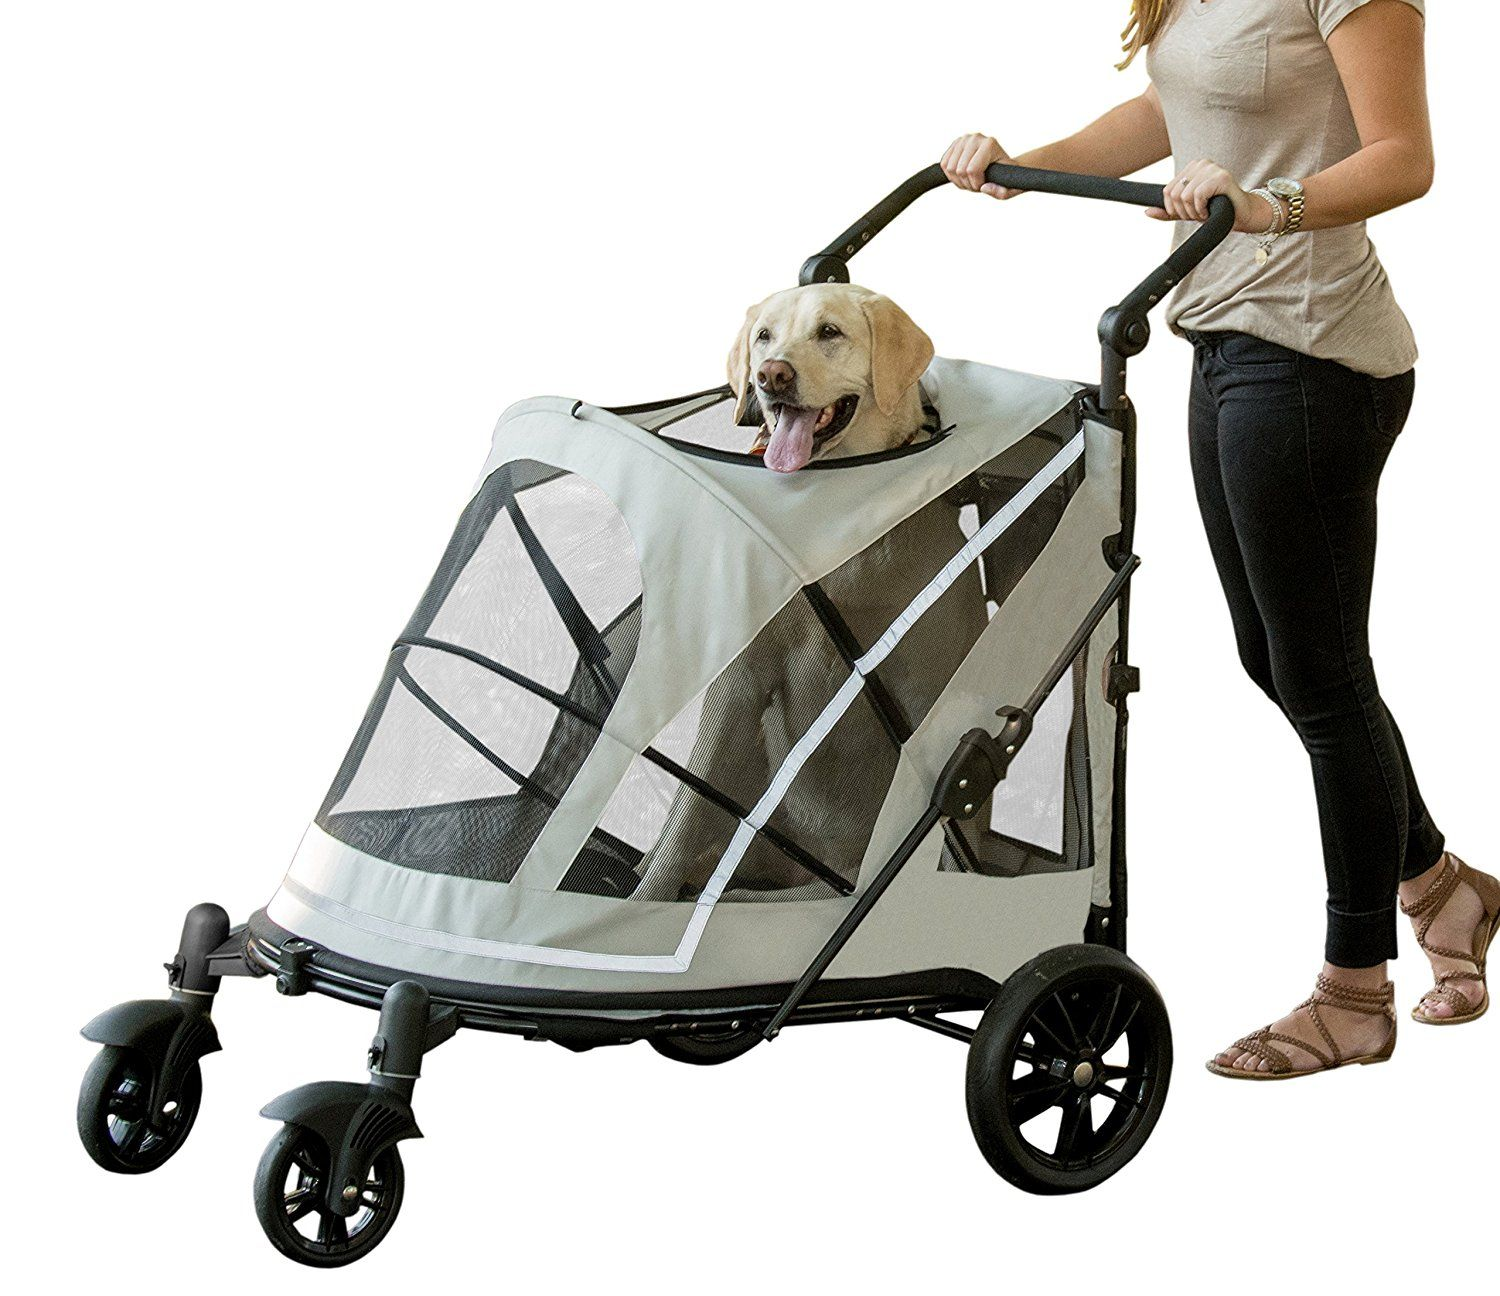 Pet Gear No Zip Expedition with push Button Entry for Single or Multiple Pets